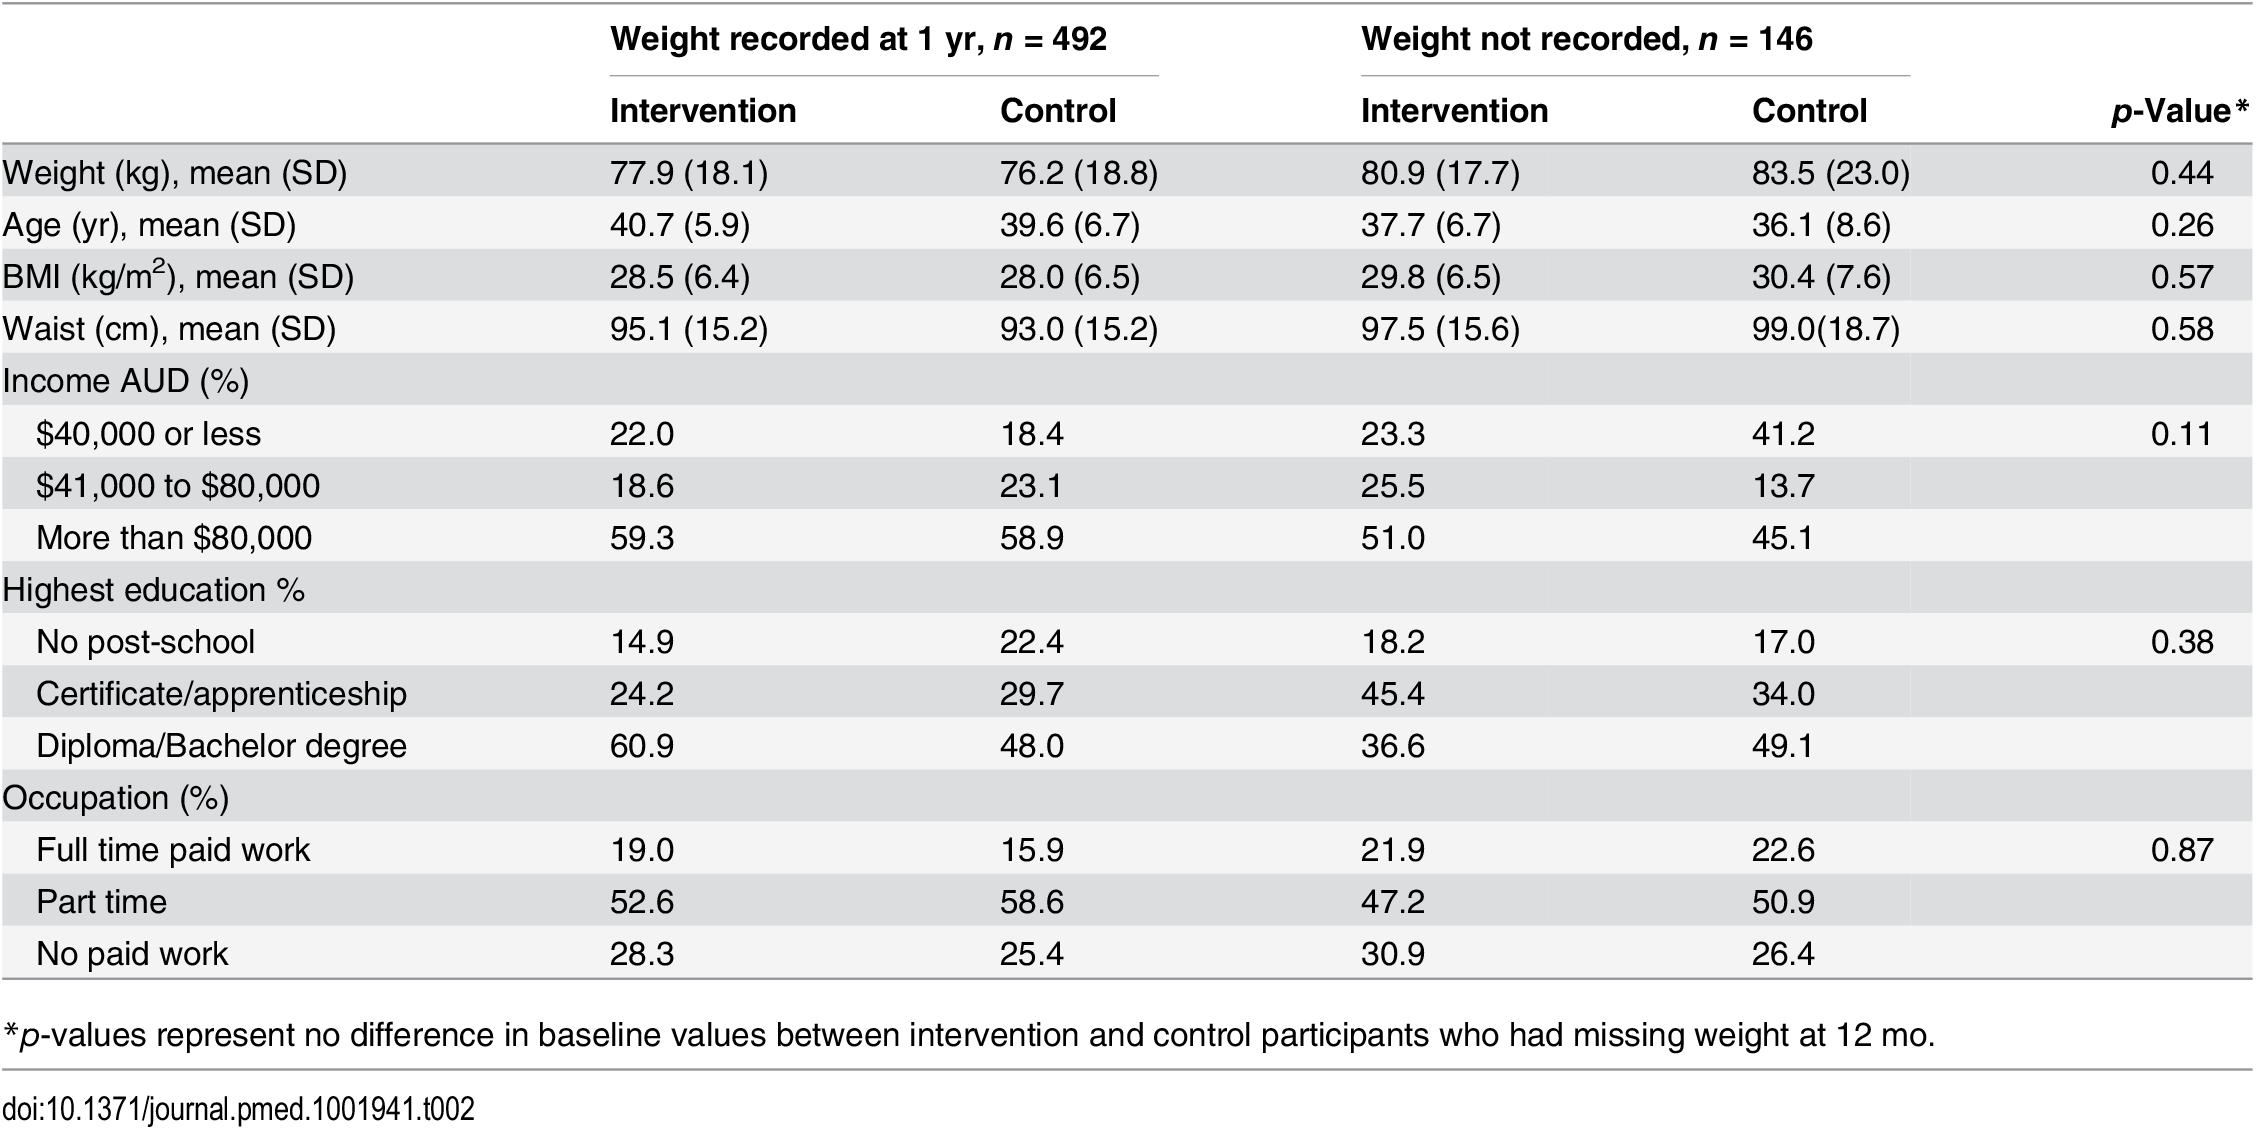 Baseline characteristics of participants with and without weight recorded at 1 year.